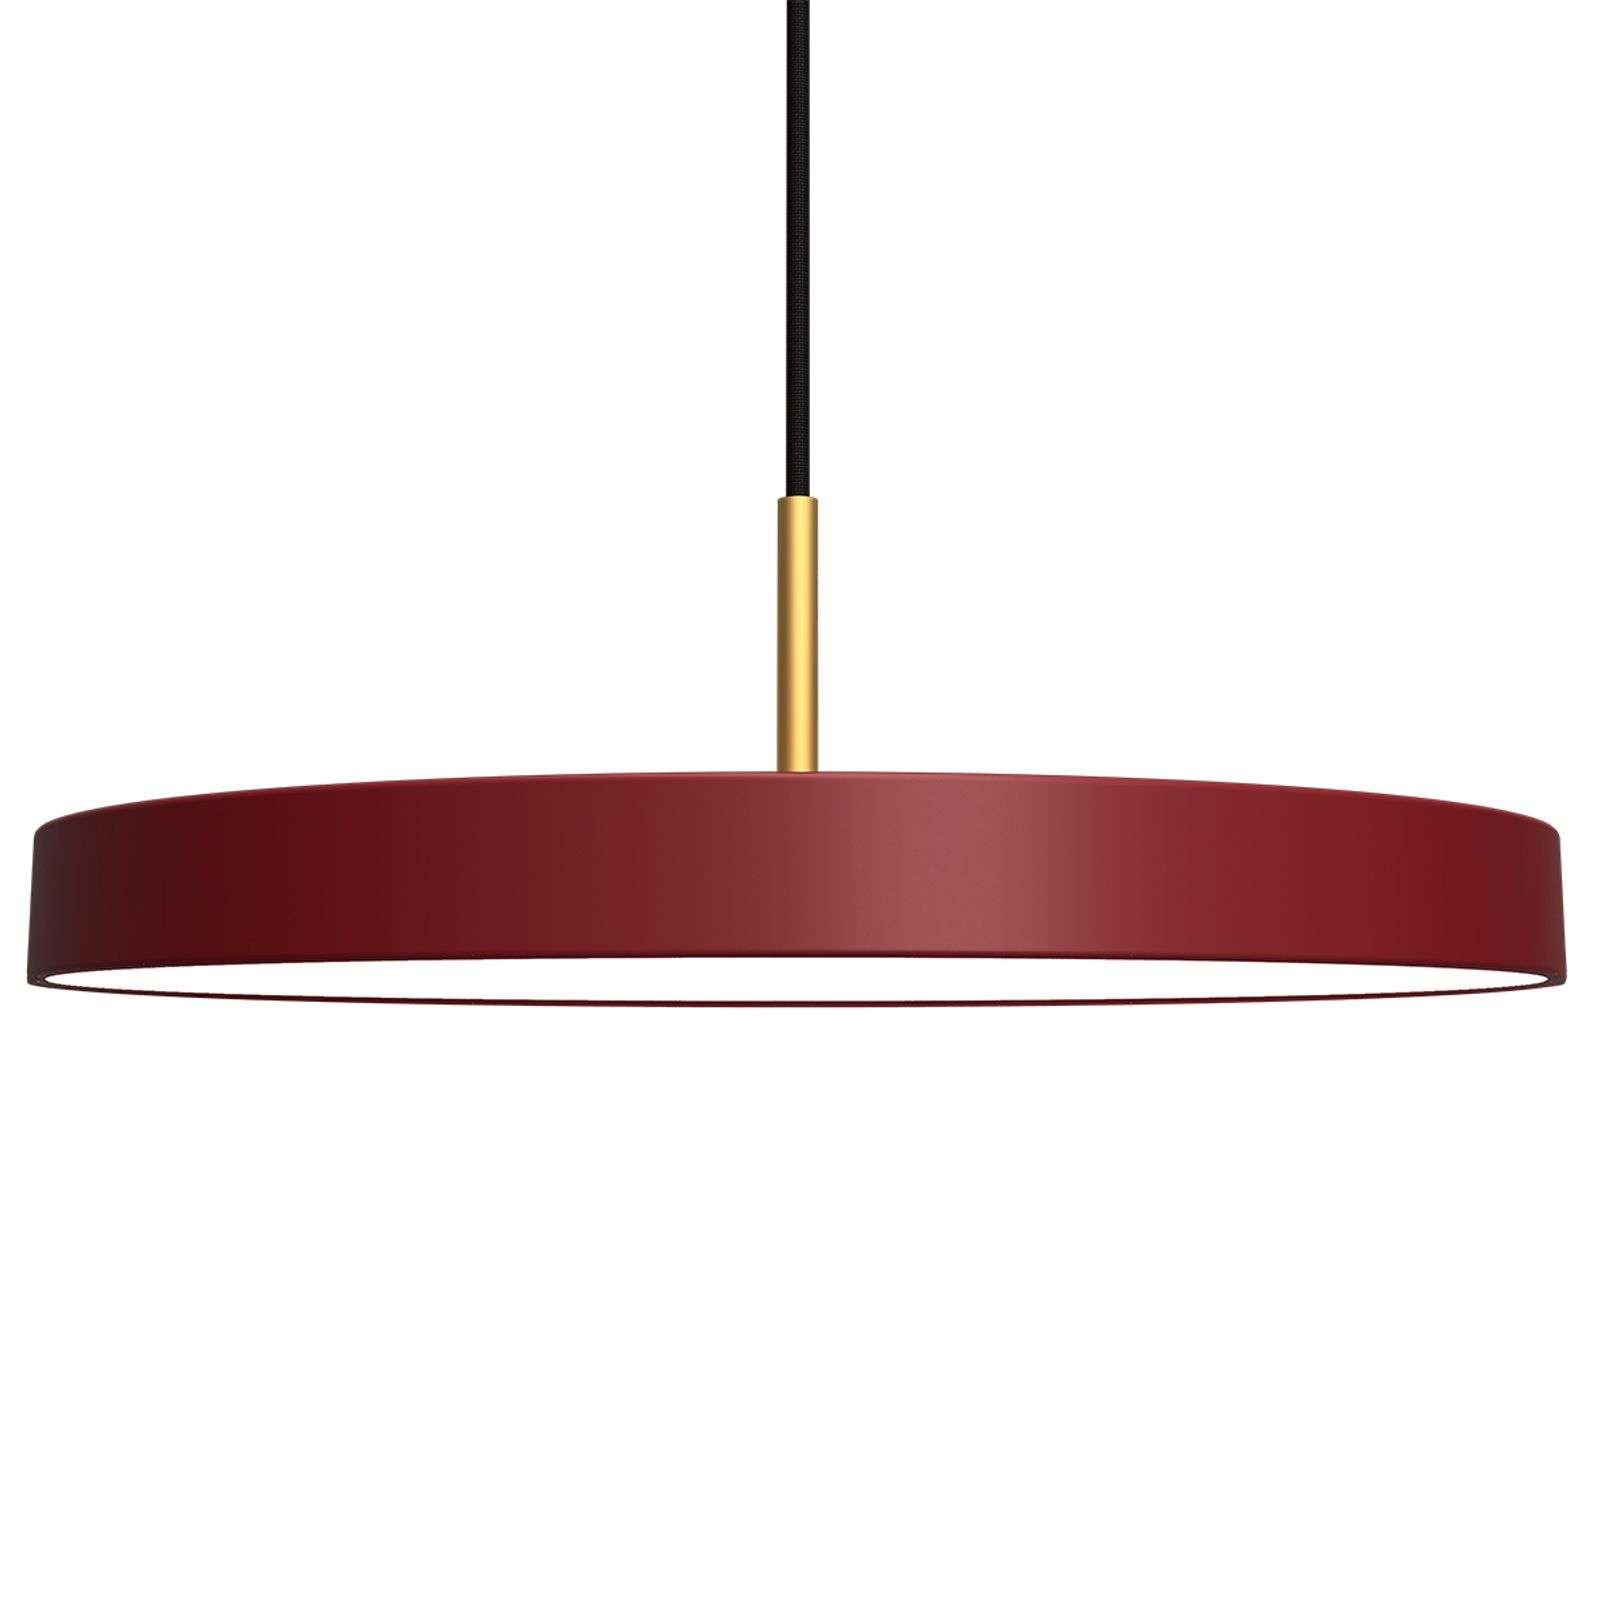 Suspension LED futuriste Asteria rouge